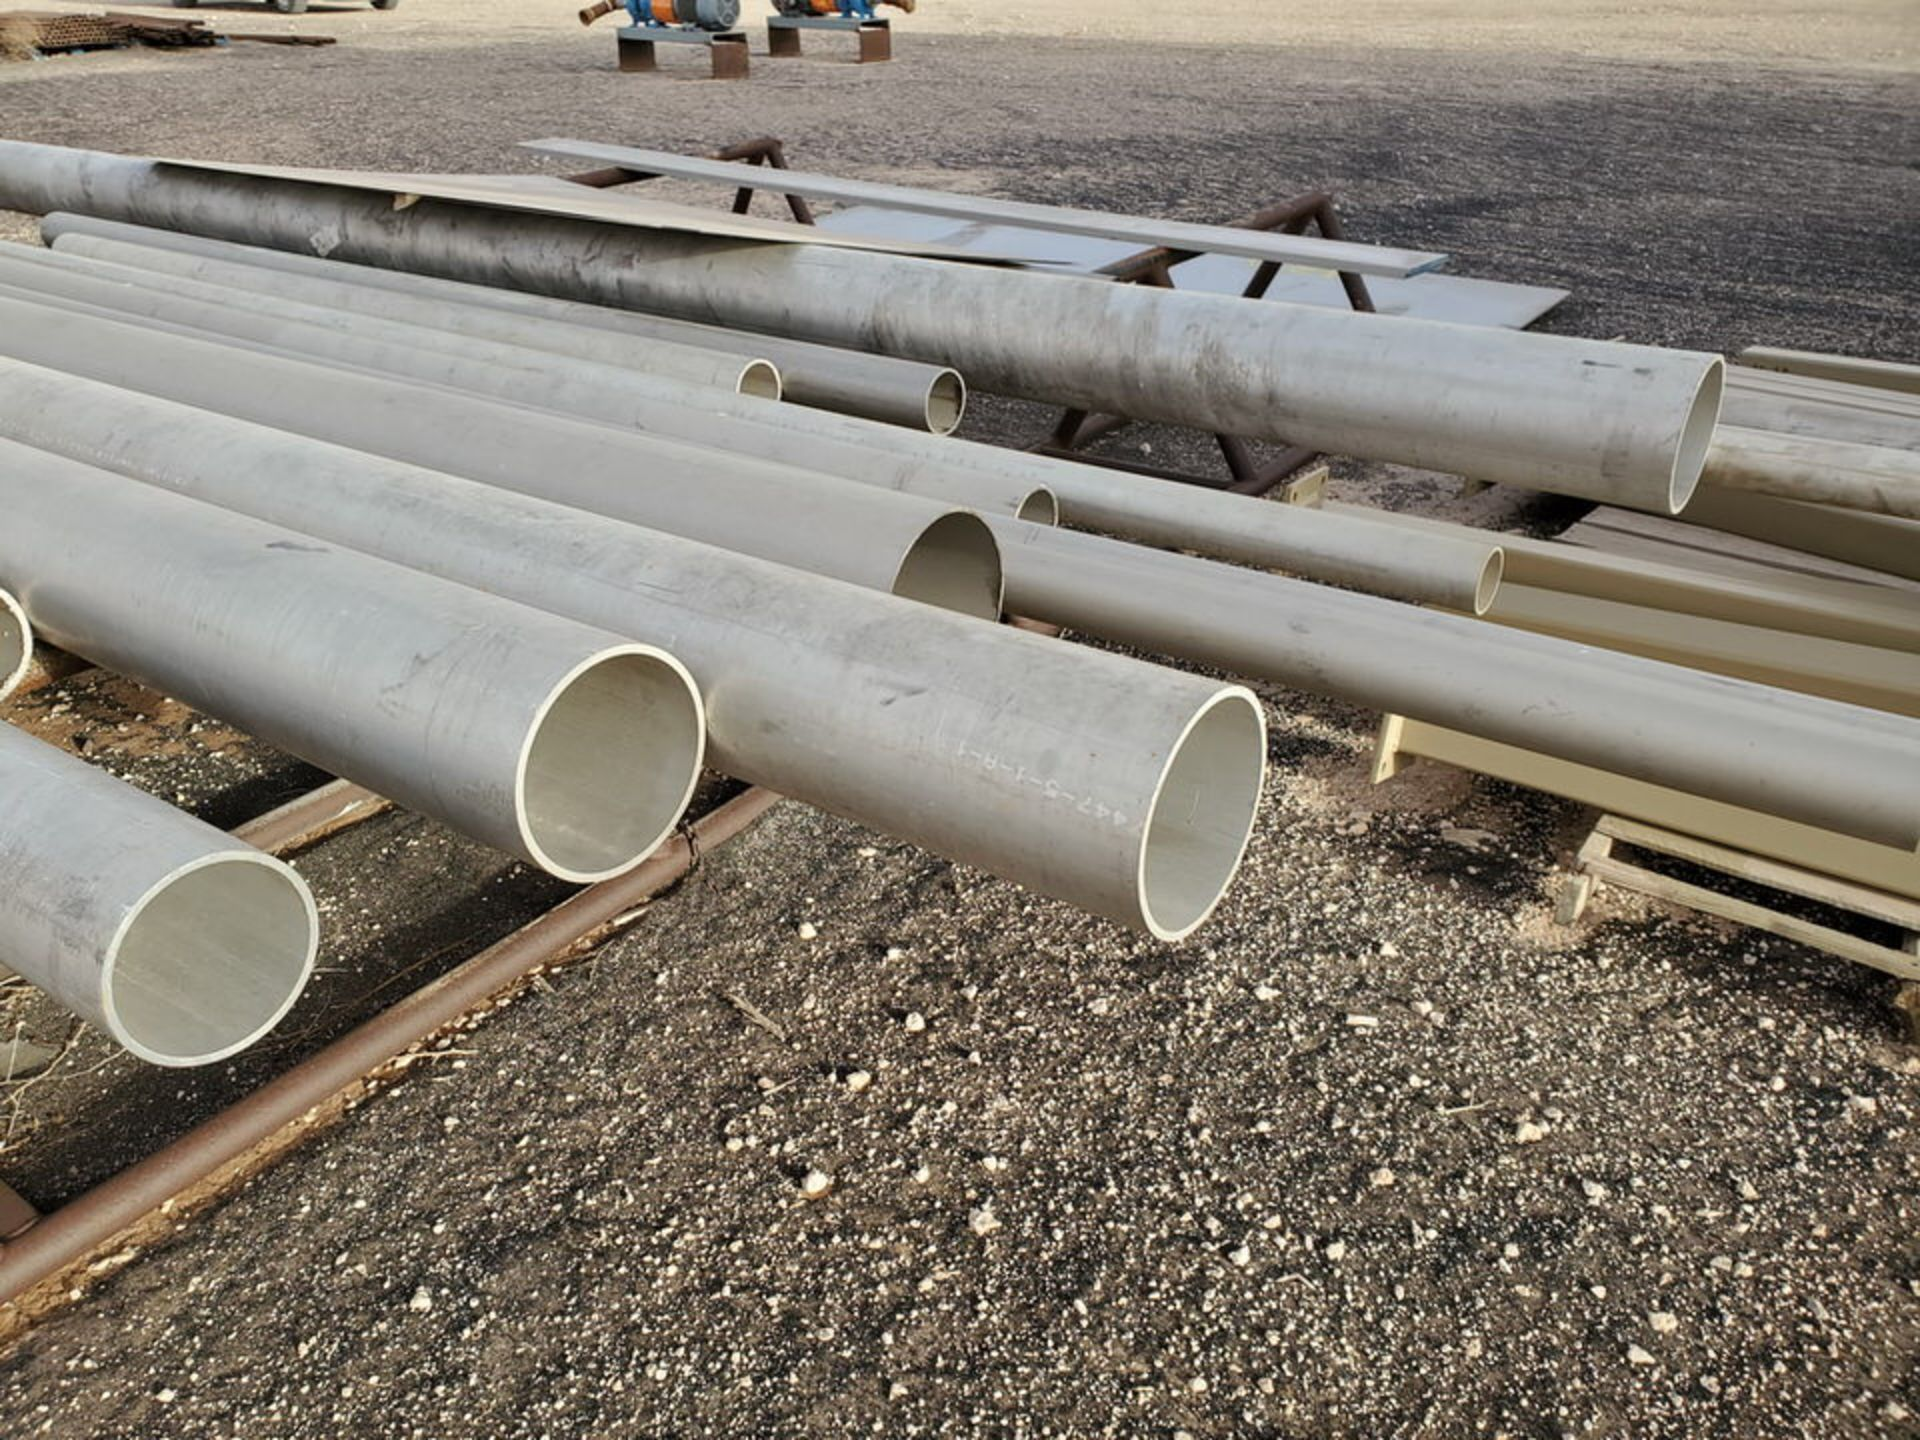 Assorted Matl. To Include But Not Limited To: S/S Flat Bar, Pipe & Sheets (Rack Excluded) - Image 17 of 22